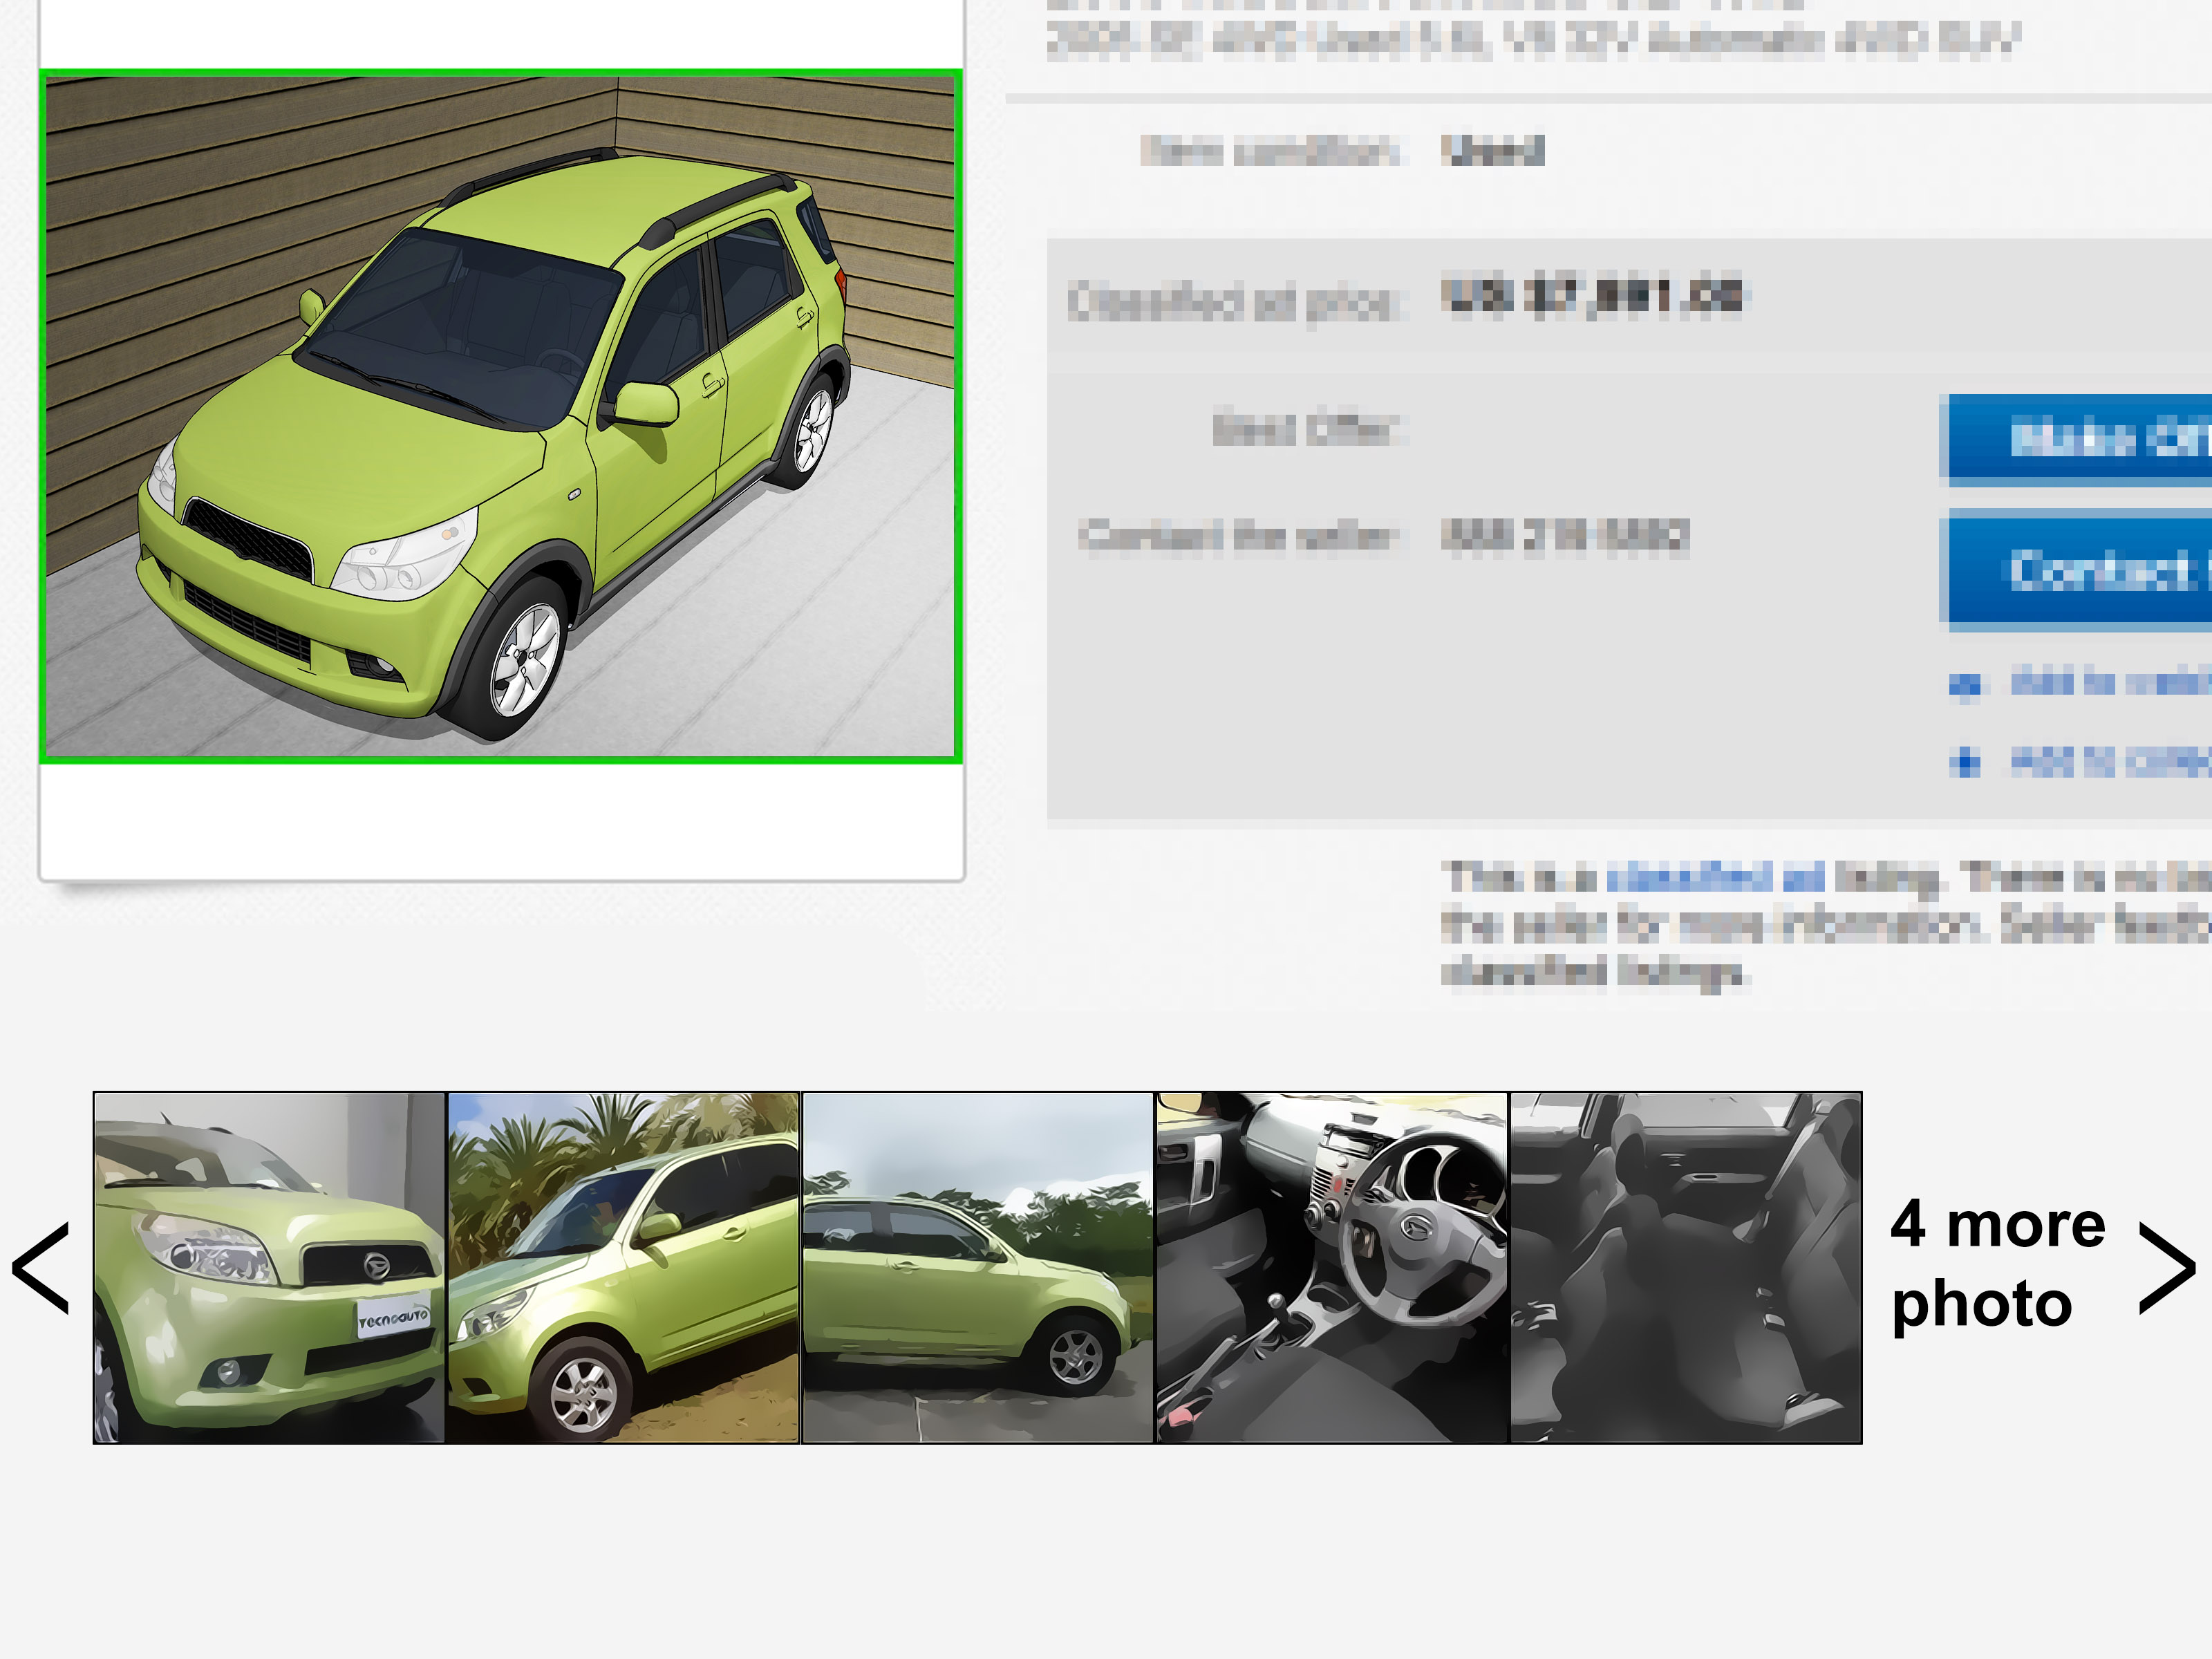 advertise your used car for sale step 12 version 4